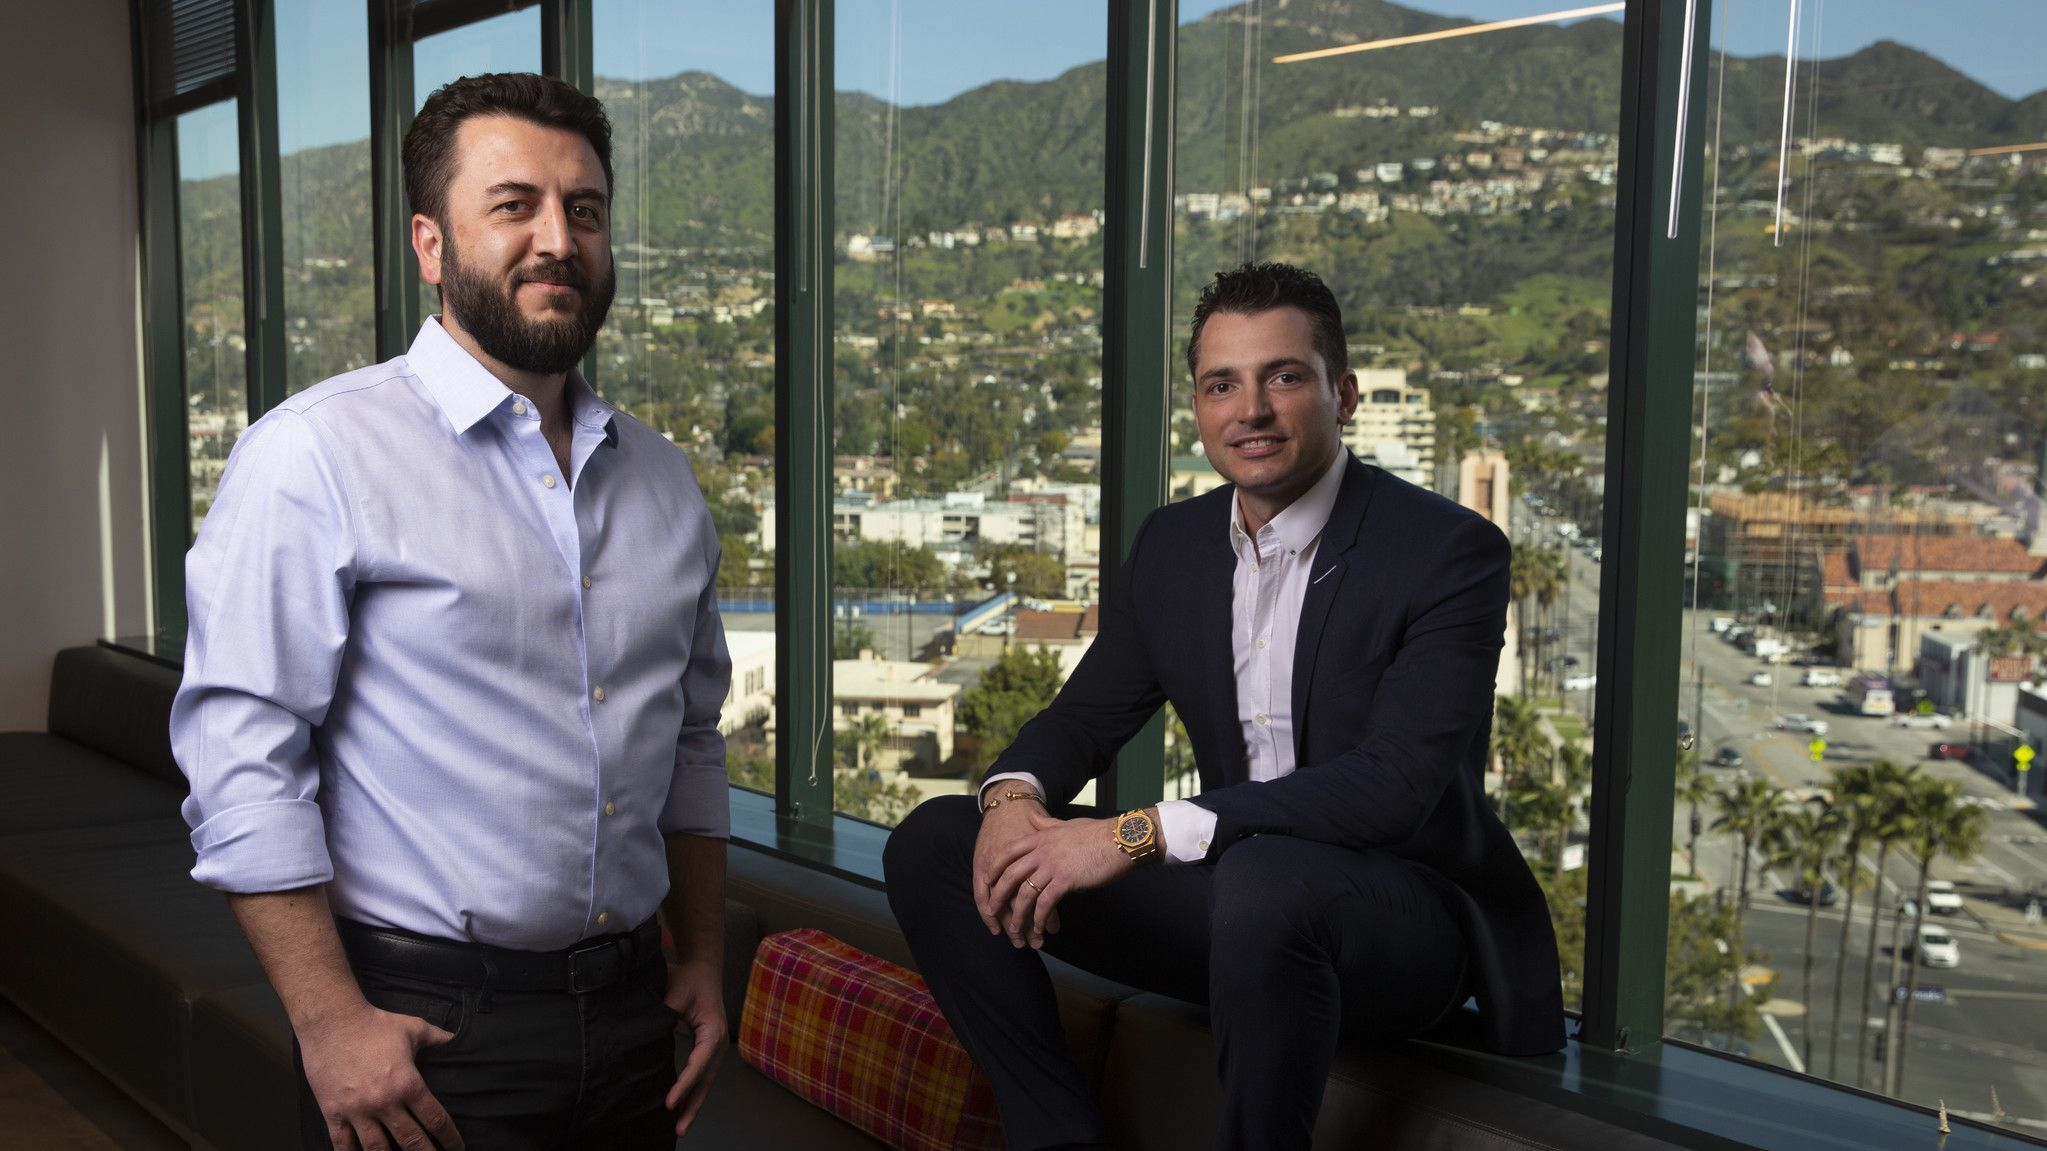 Even plumbers need software: How Glendale's ServiceTitan became a billion-dollar start-up